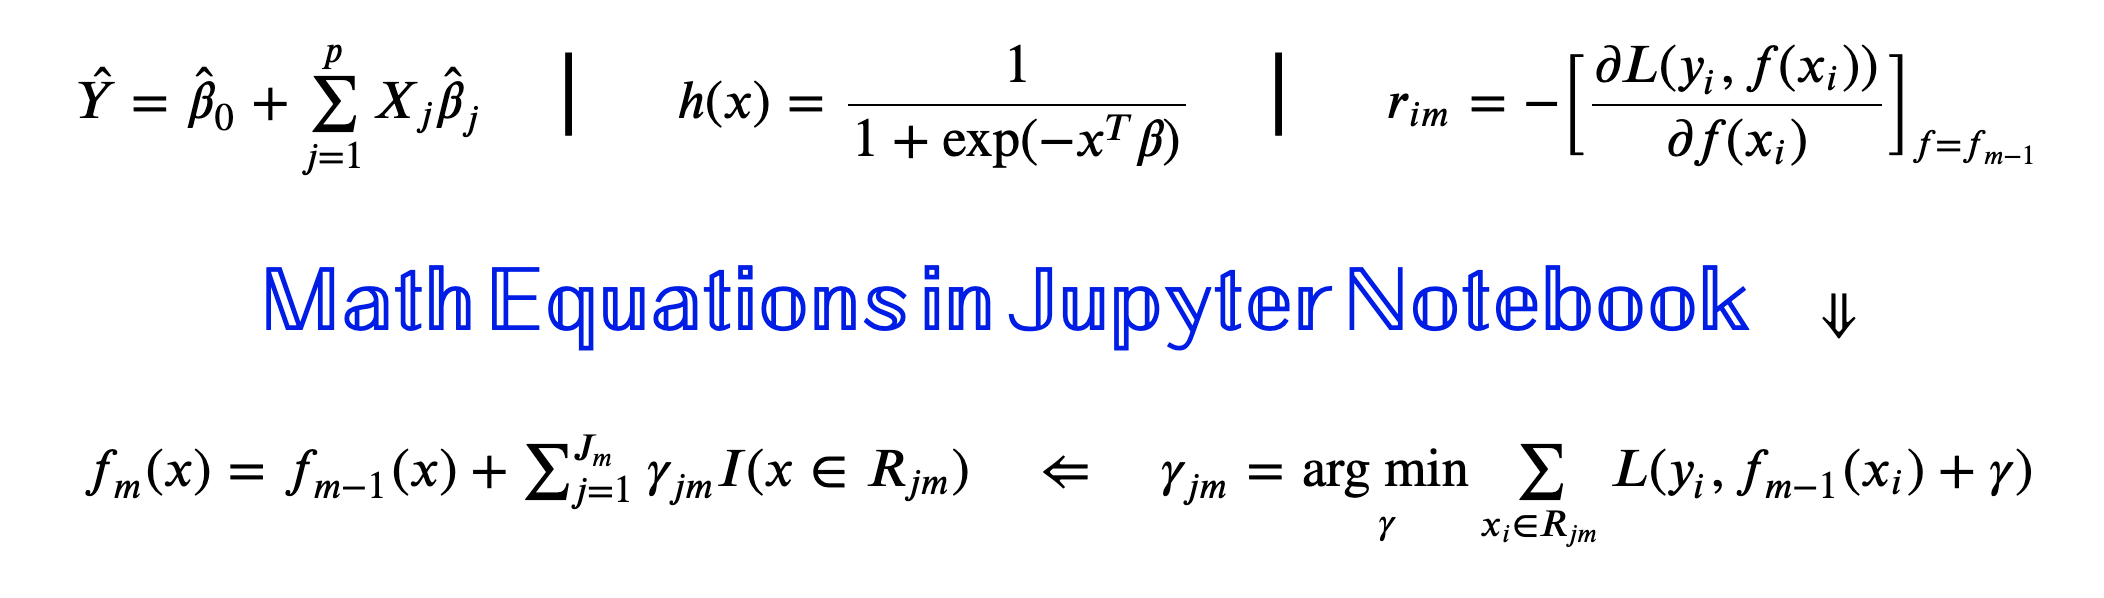 Writing Math Equations In Jupyter Notebook A Naive Introduction By Abhay Shukla Analytics Vidhya Medium